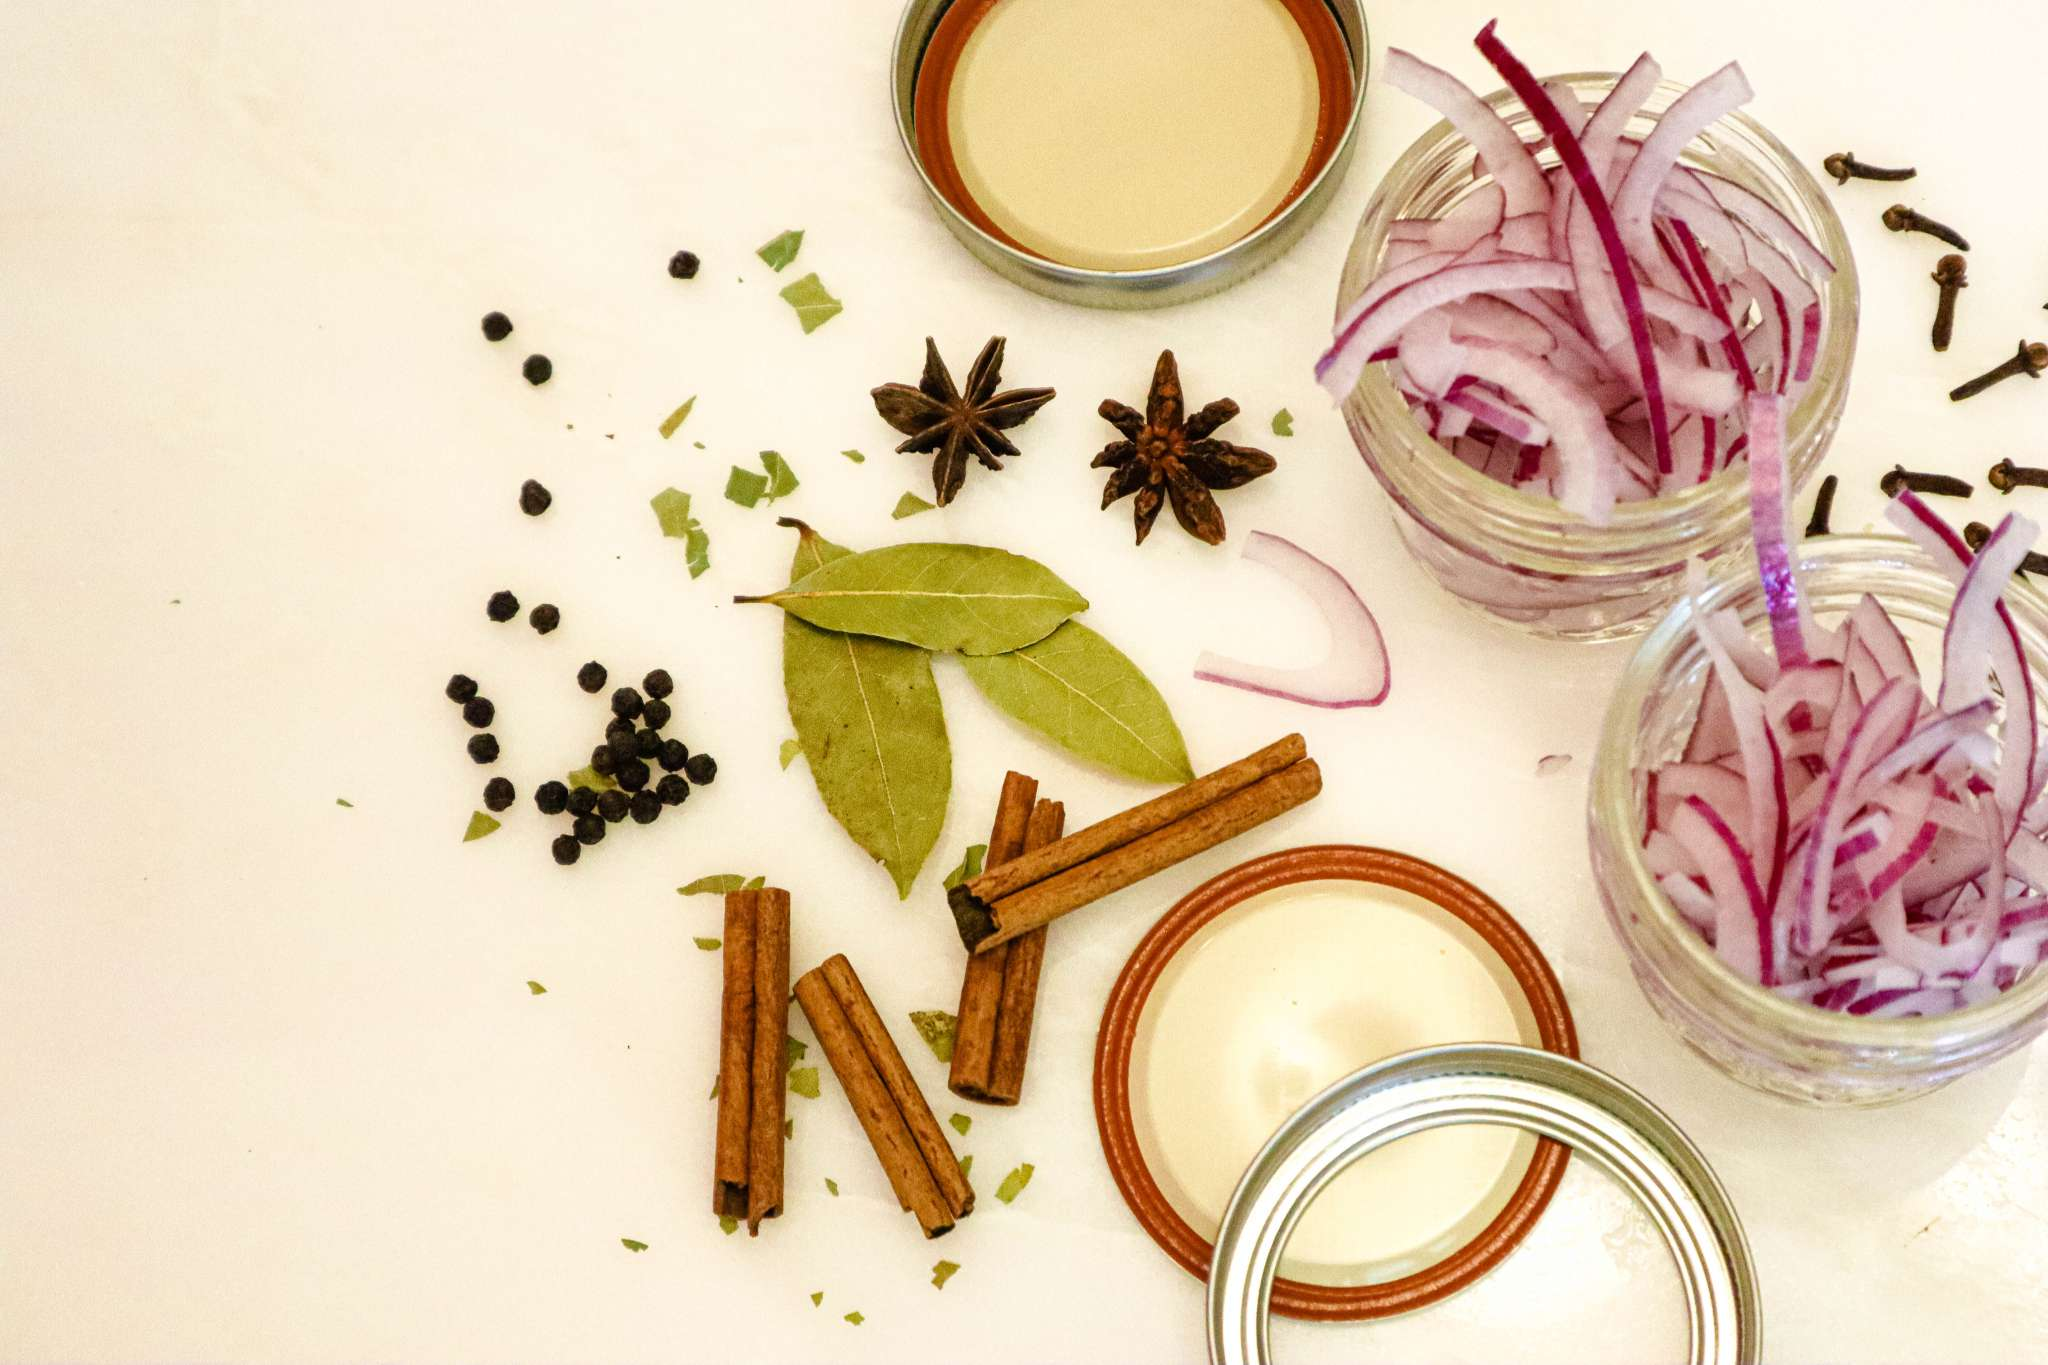 McCormick spices for Cinnamon and Spice pickled onions